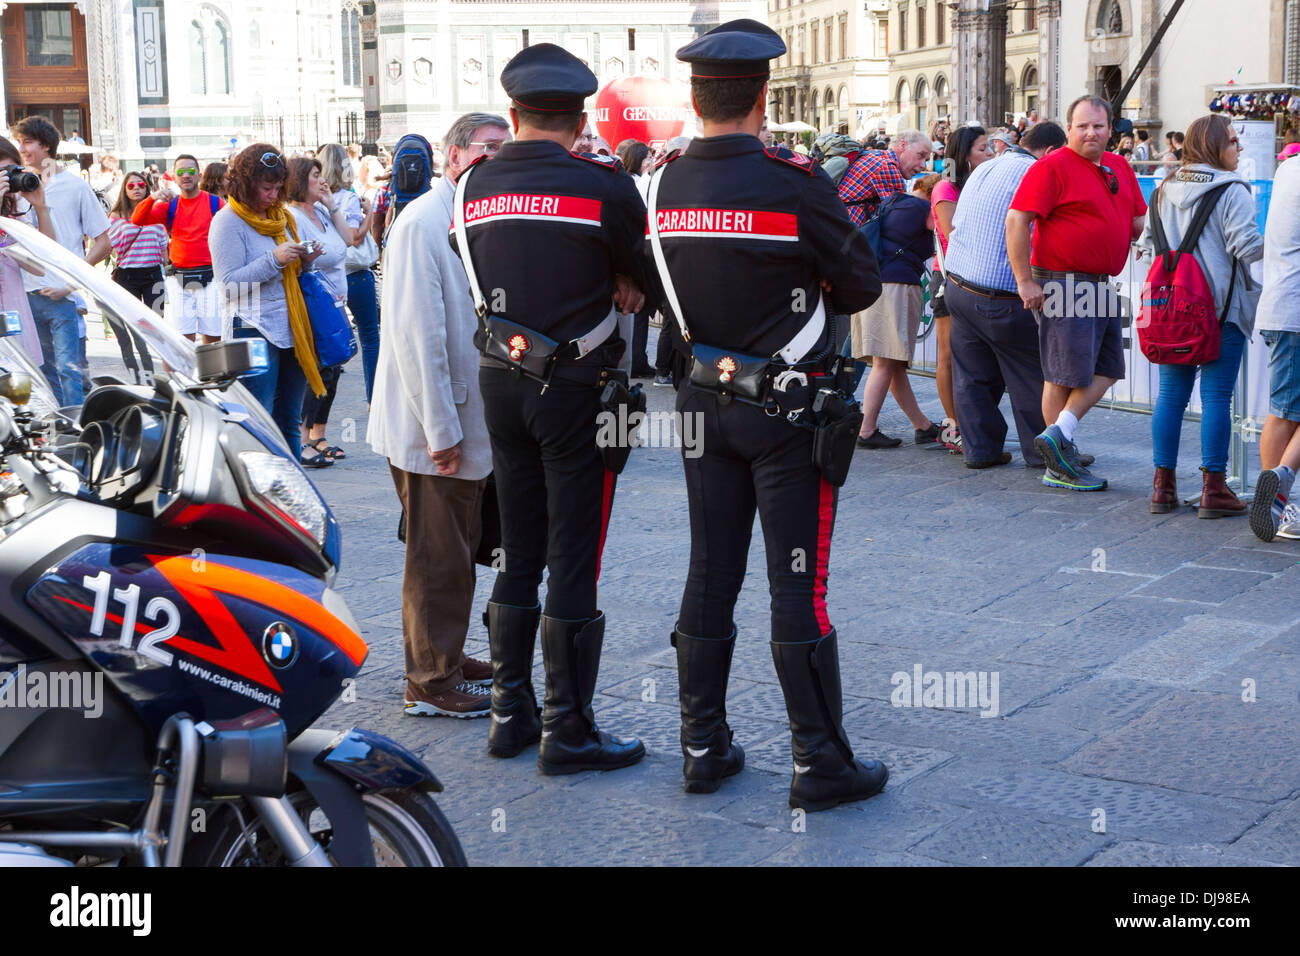 Carabinieri Police Men Watching A Crowd Of People Florence Italy Dj Ea